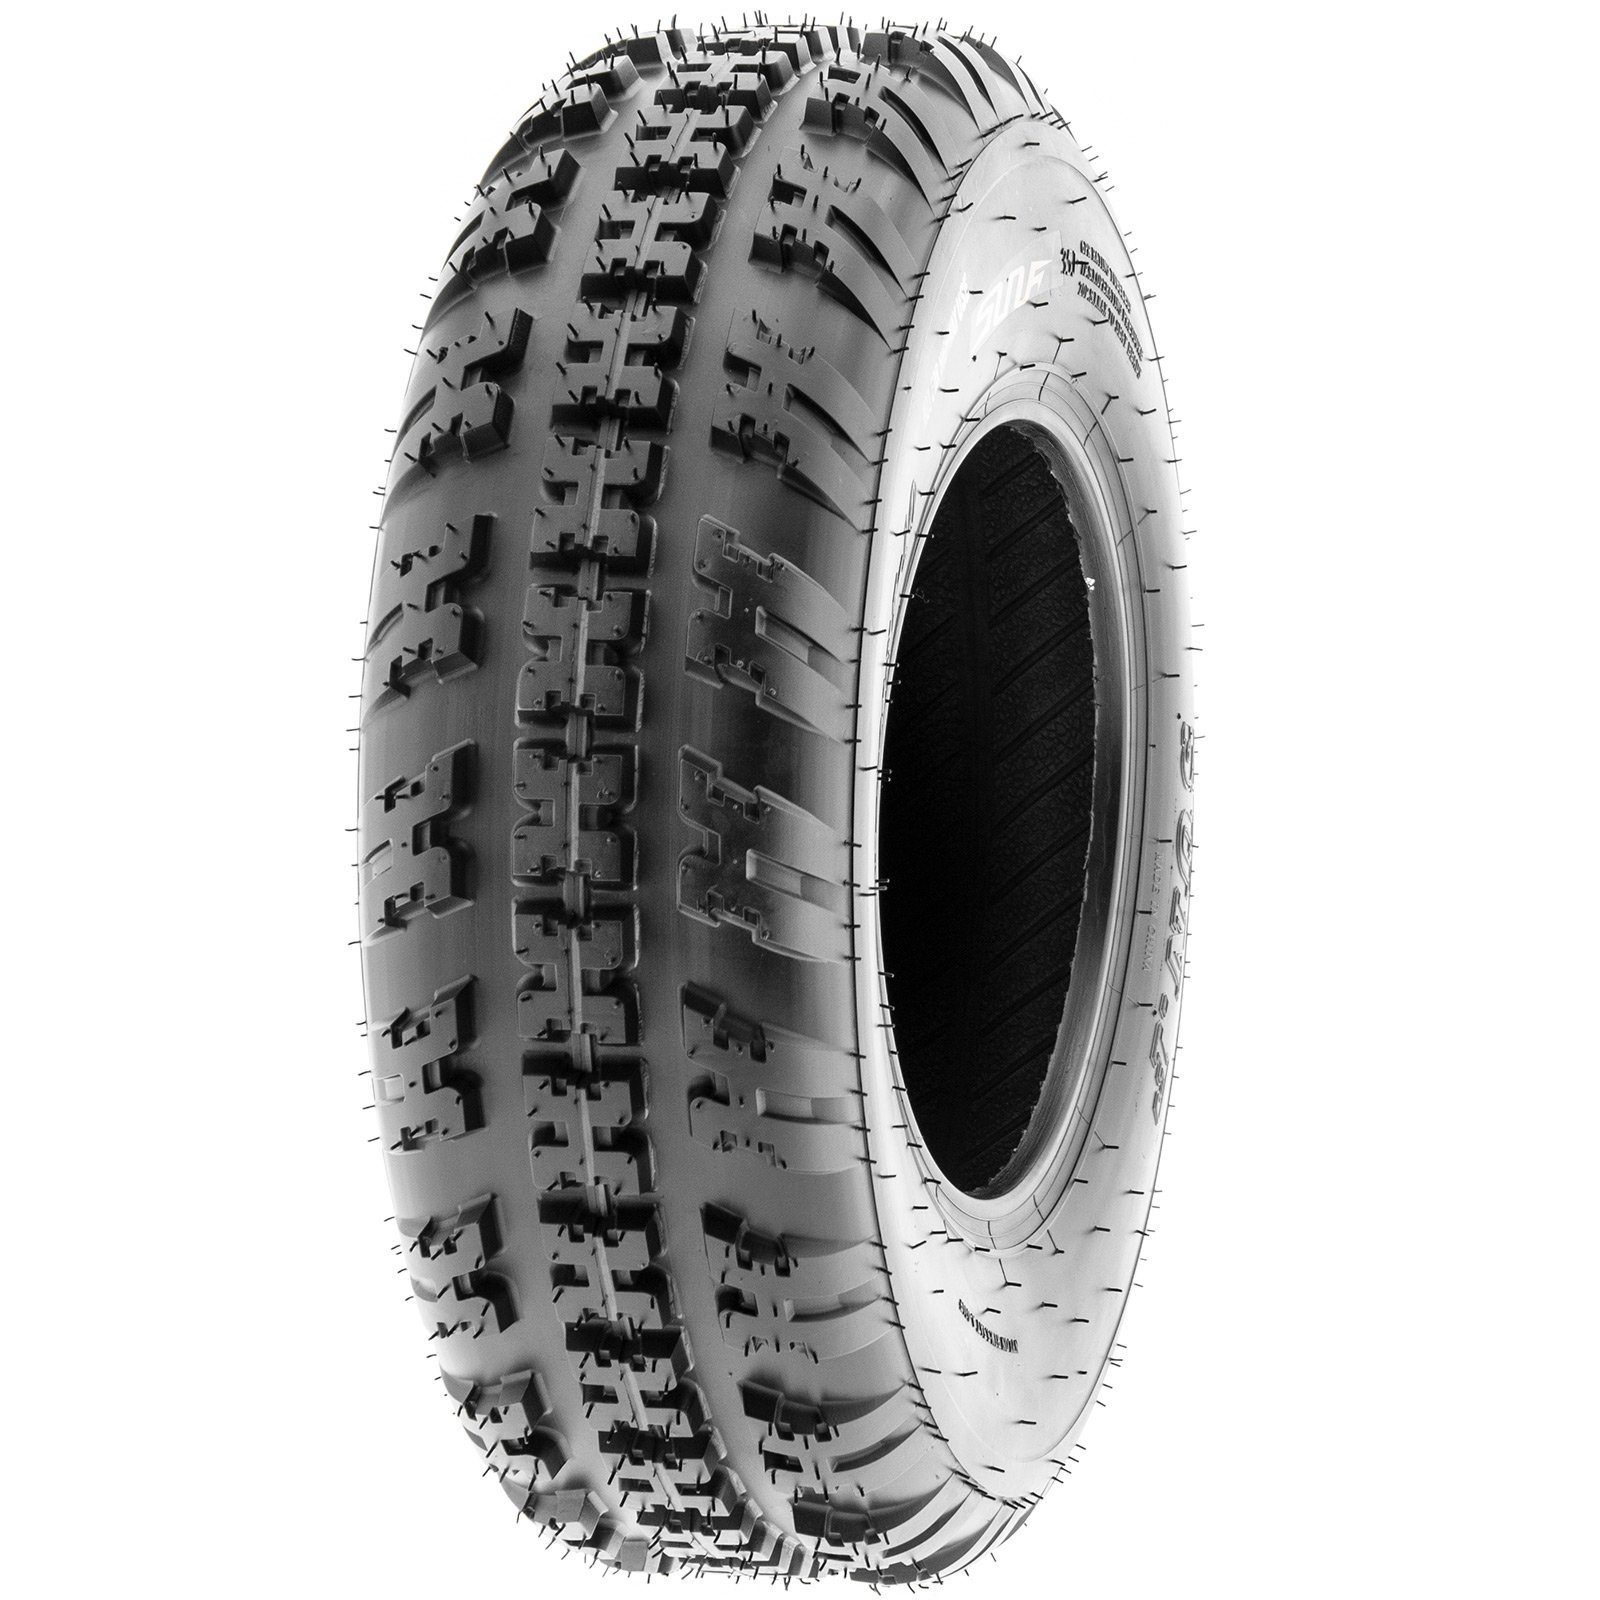 SunF Knobby Sport ATV Tires 20x6-10 & 18x10-8 4/6 PR A031 (Complete set of 4) by SunF (Image #5)